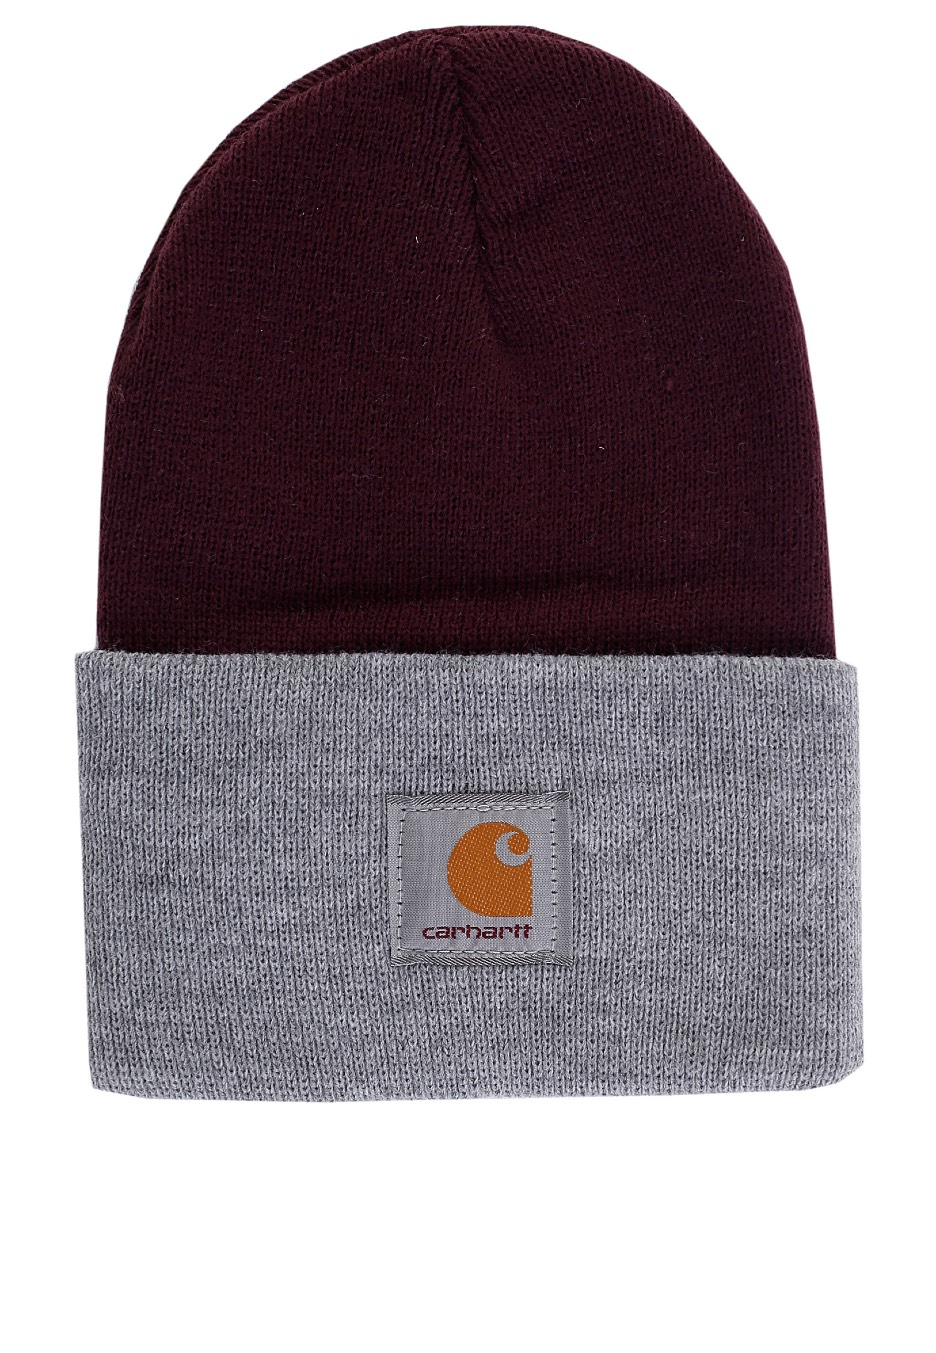 b606e62e598 Carhartt WIP - Bi-Colored Acrylic Watch Burnt Umber Heather Grey - Beanie